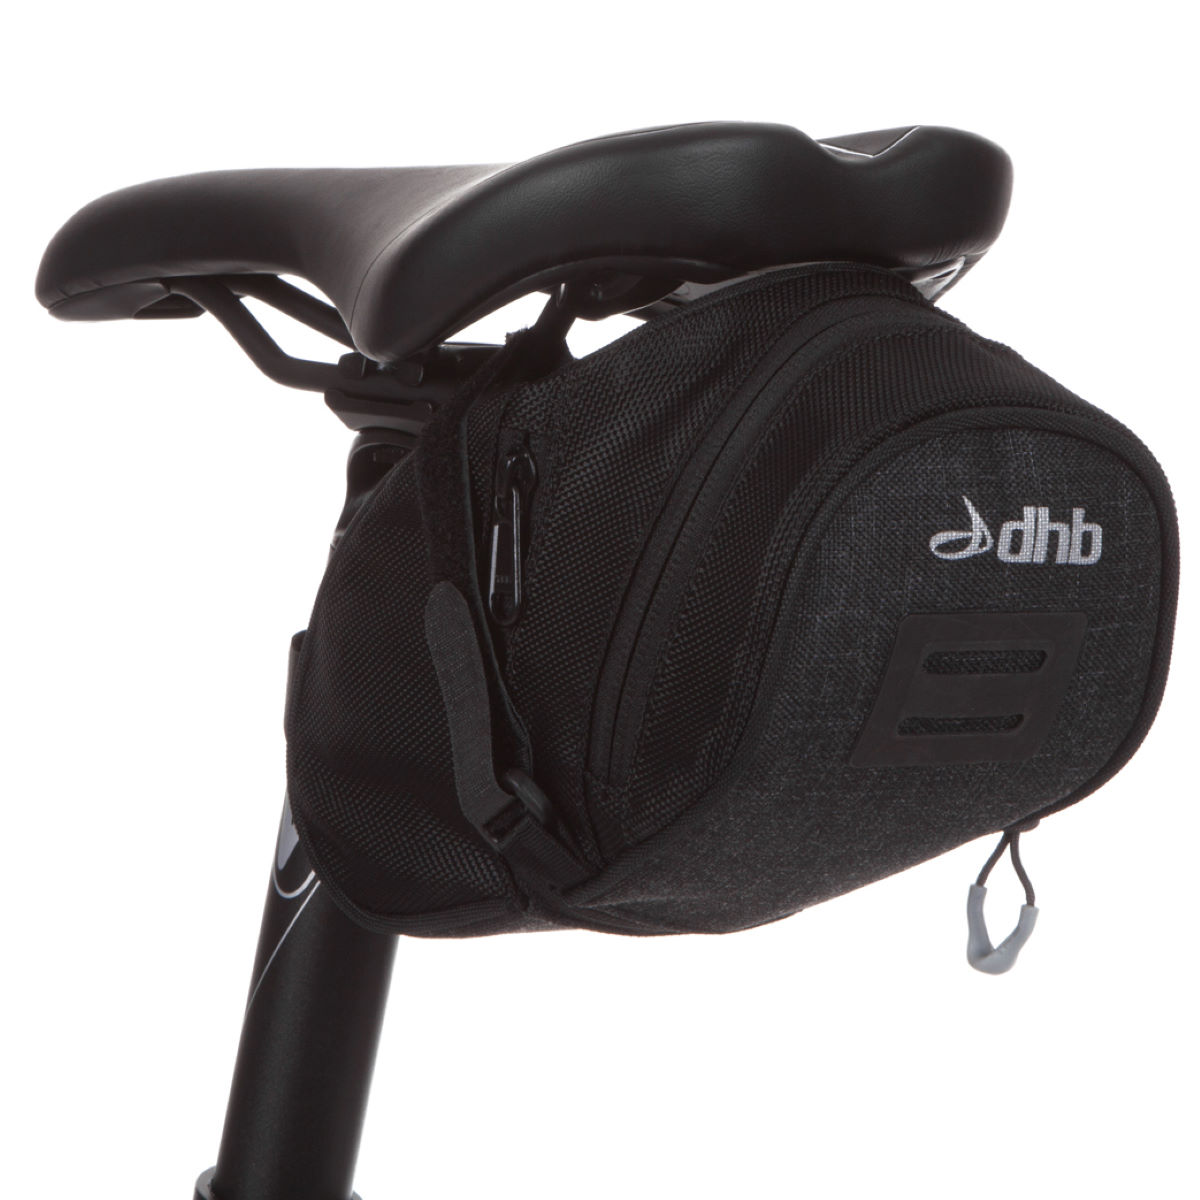 Dhb medium saddle bag saddle bags grey nu0158 1